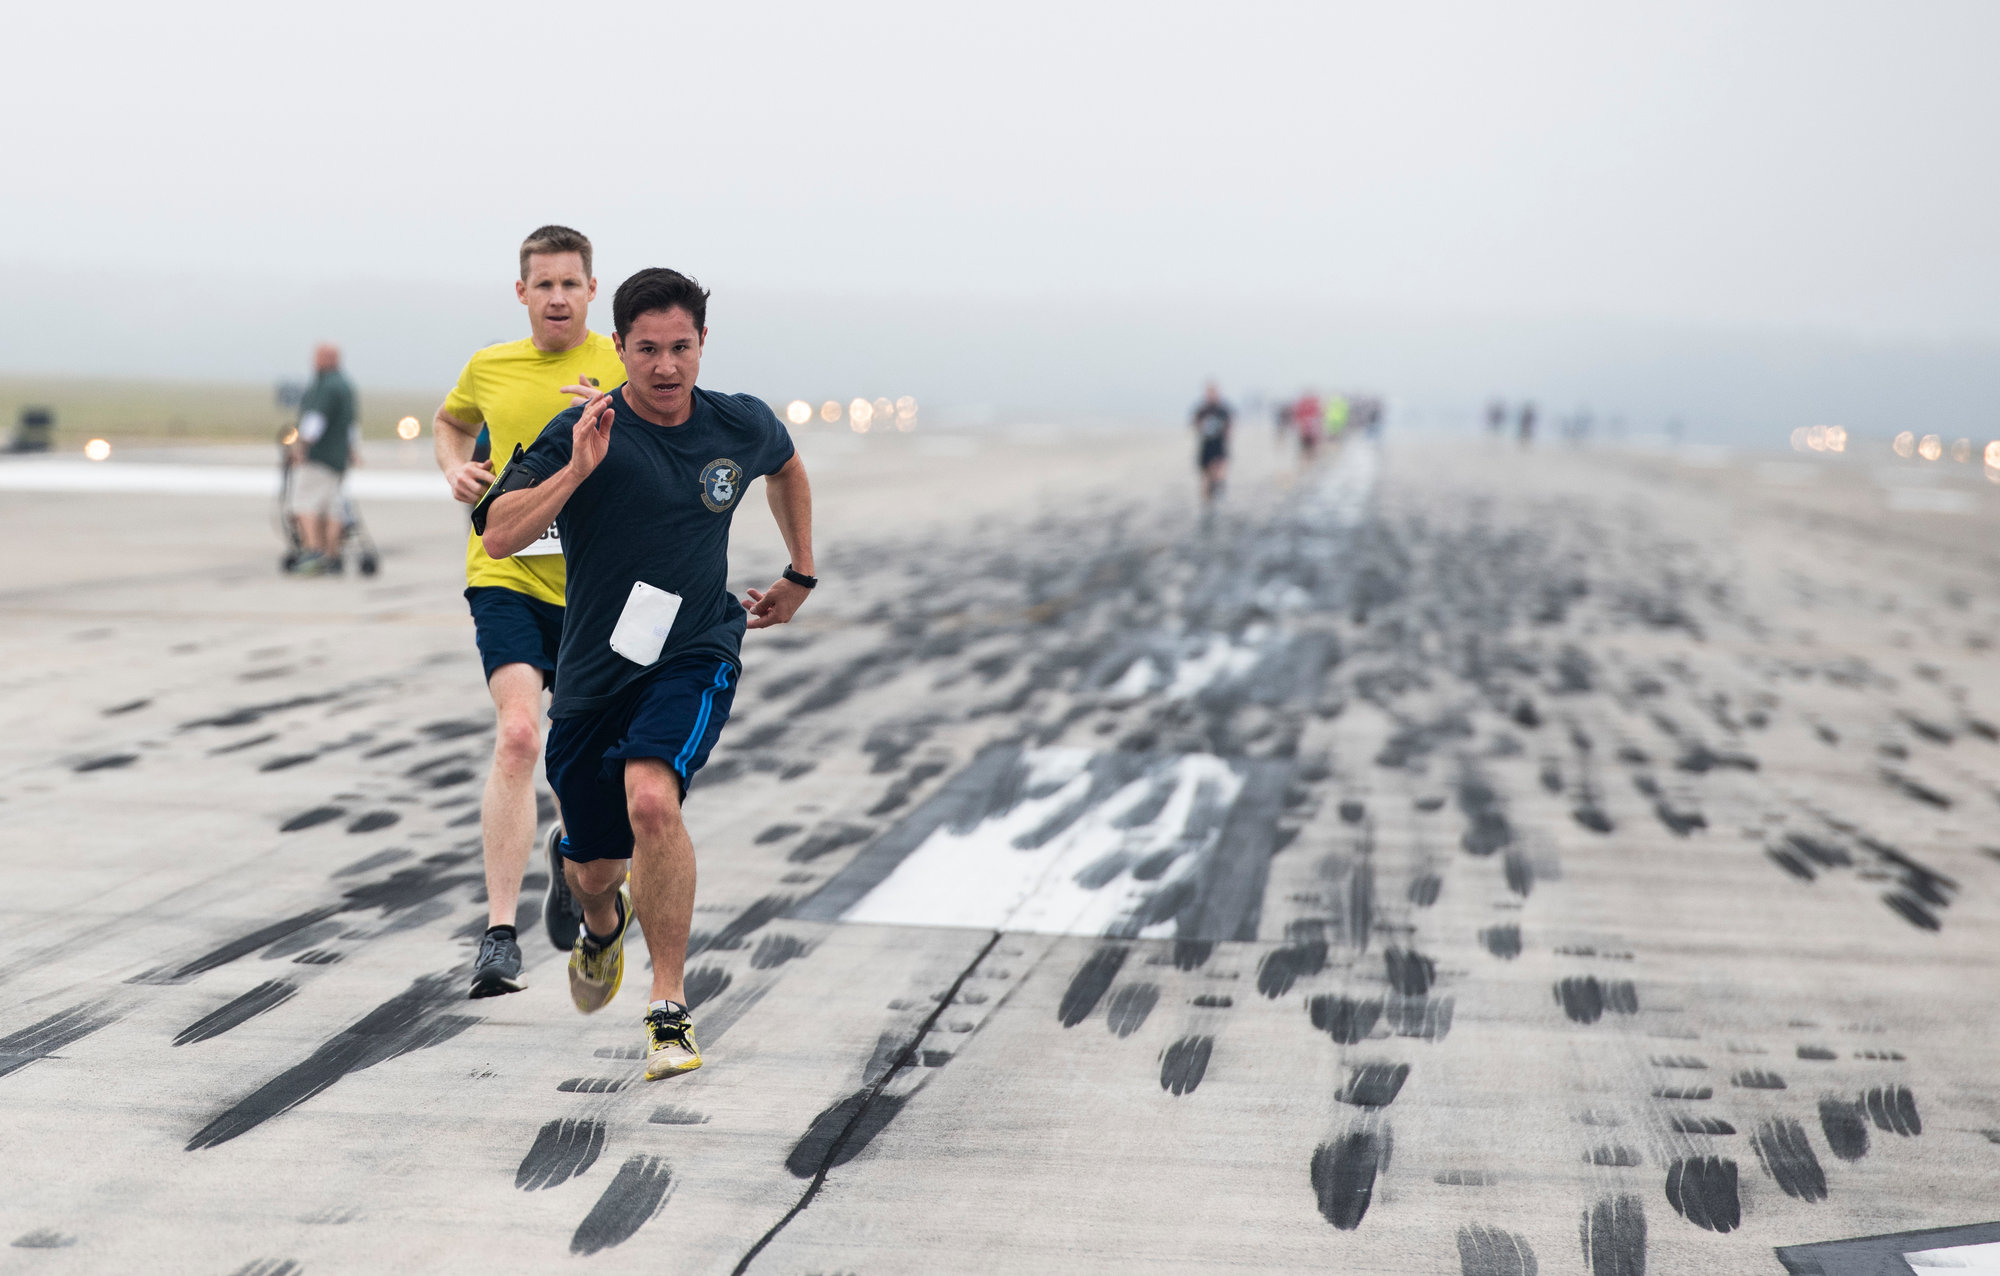 Team Shaw members run the final stretch during a flightline 5K at Shaw Air Force Base on Saturday. During the run, military members received the opportunity to build camaraderie with their civilian counterparts in a healthy and lively way.